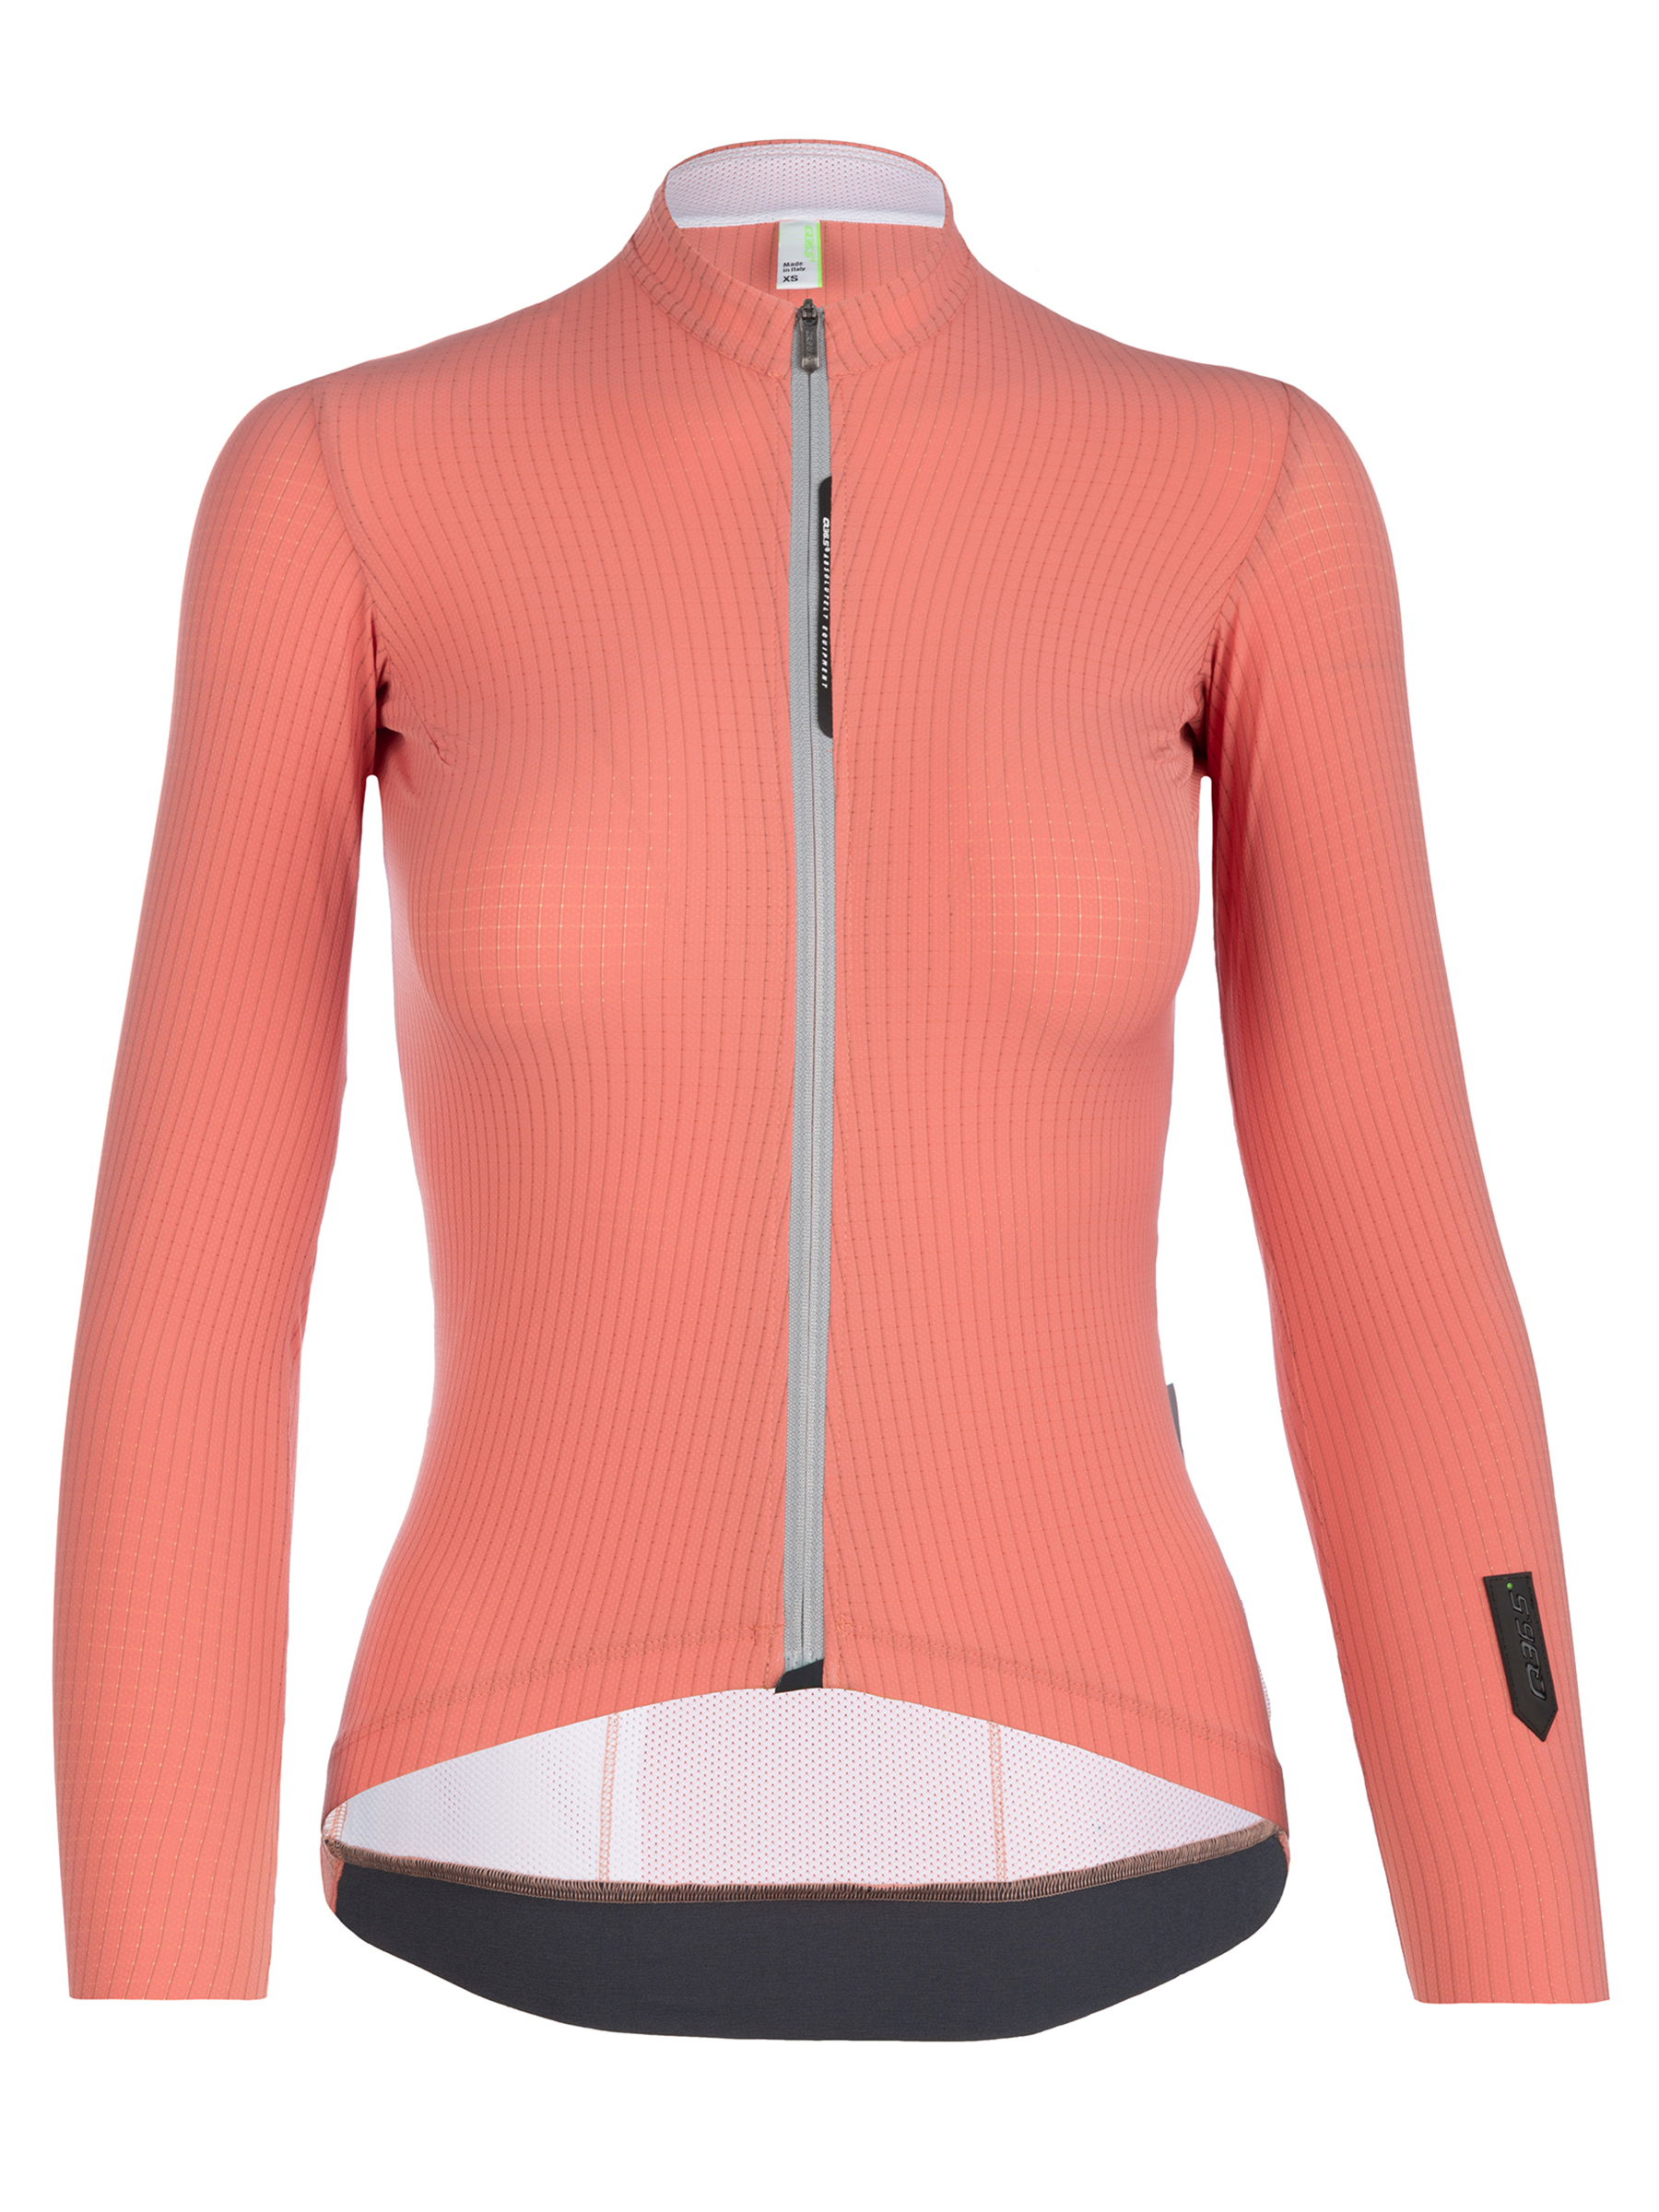 Maillot vélo femme manches longues Pinstripe X rose Q36.5